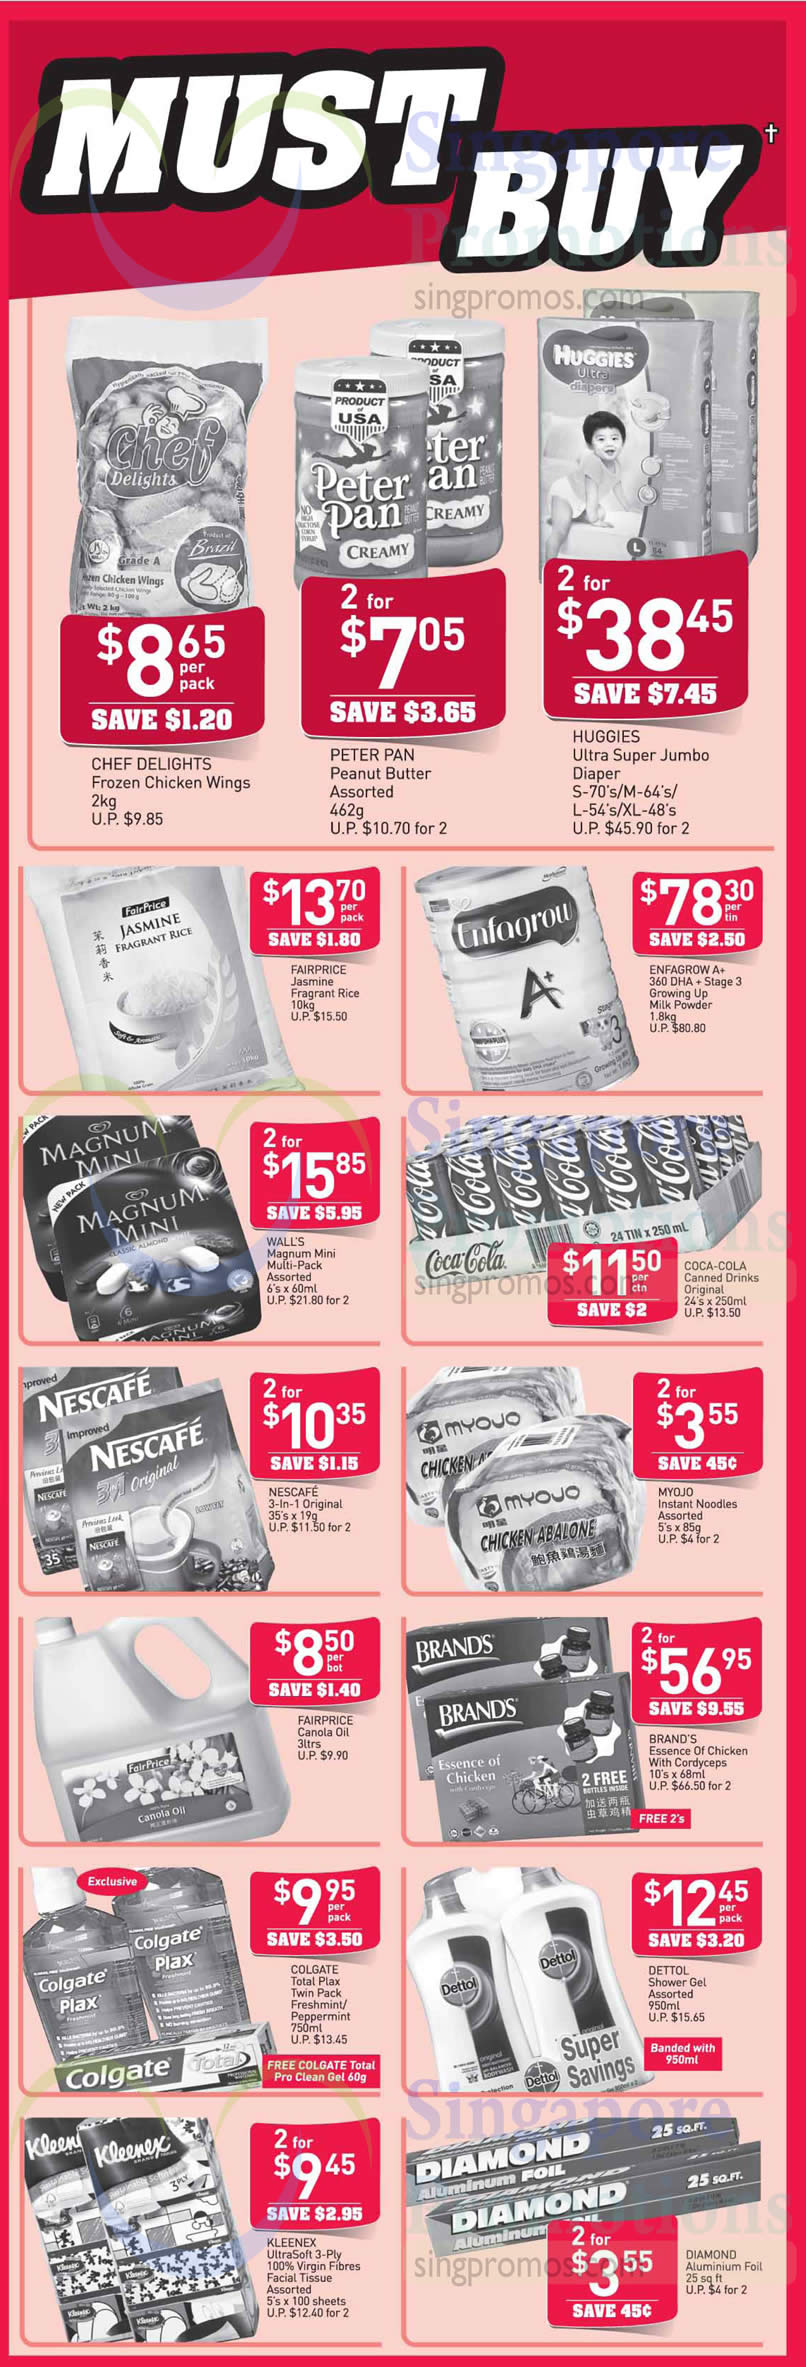 (Until 22 Oct) Must Buy Chef Delights, Peter Pan, Huggies, Enfagrow, Coca Cola, Magnum